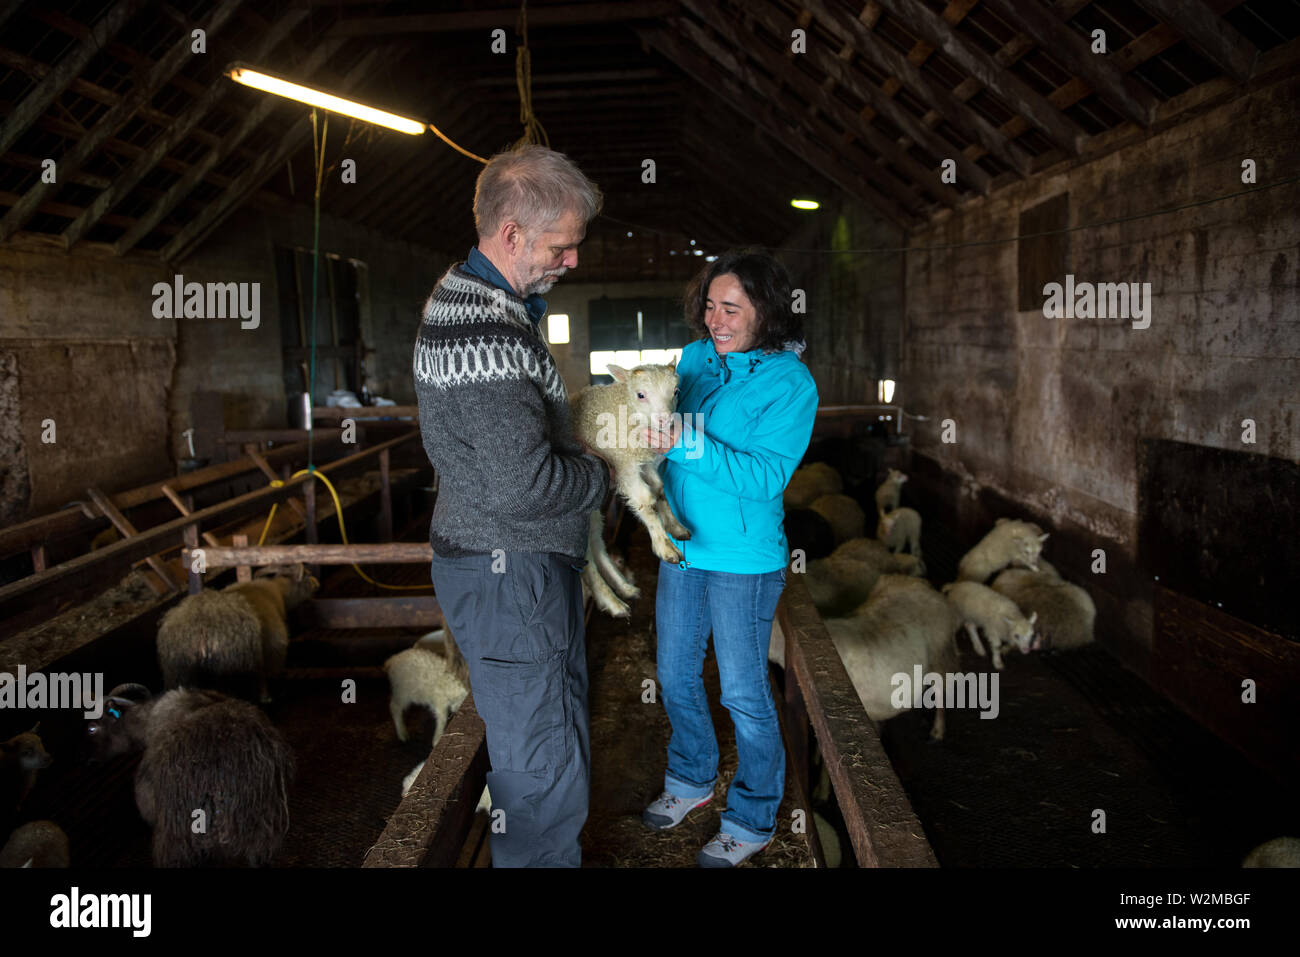 GRUNDARFJORDUR, ICELAND - MAY 19, 2019: Local farmer showing a newborn baby Icelandic sheep to a tourist girl in a stall - Stock Image